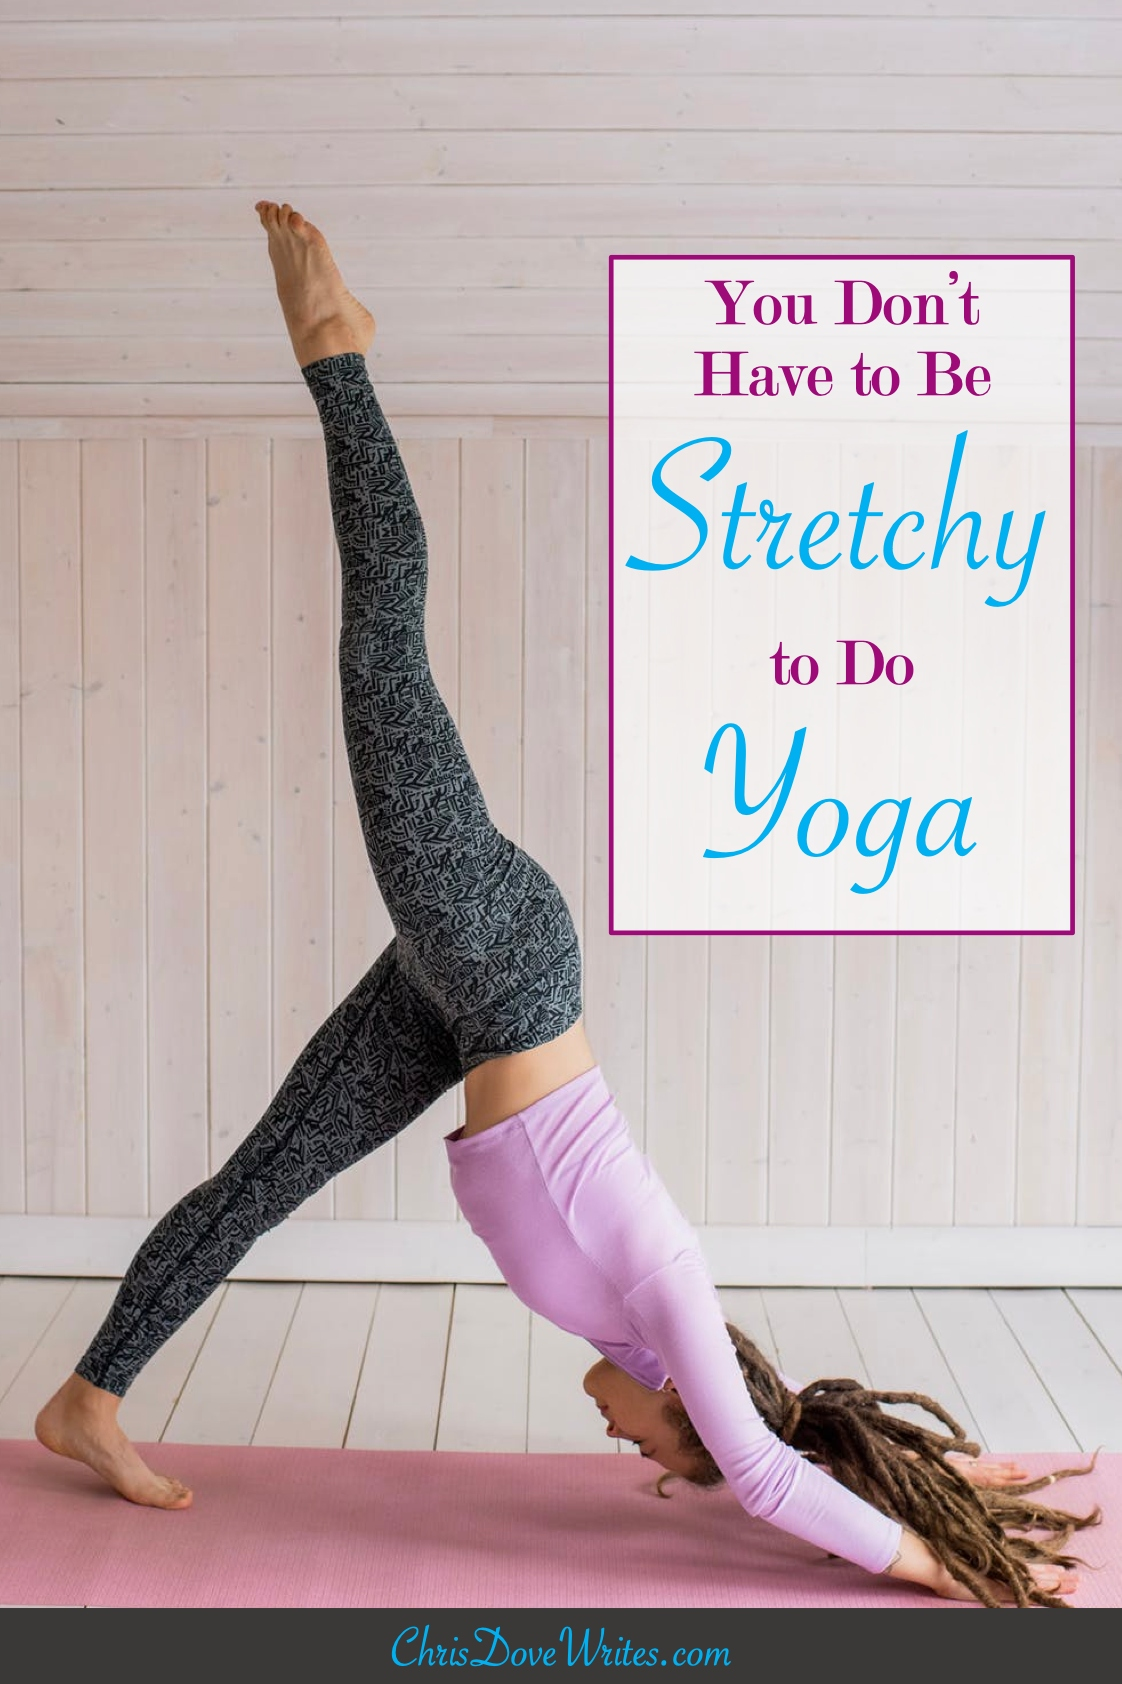 Yoga is not only for the flexible